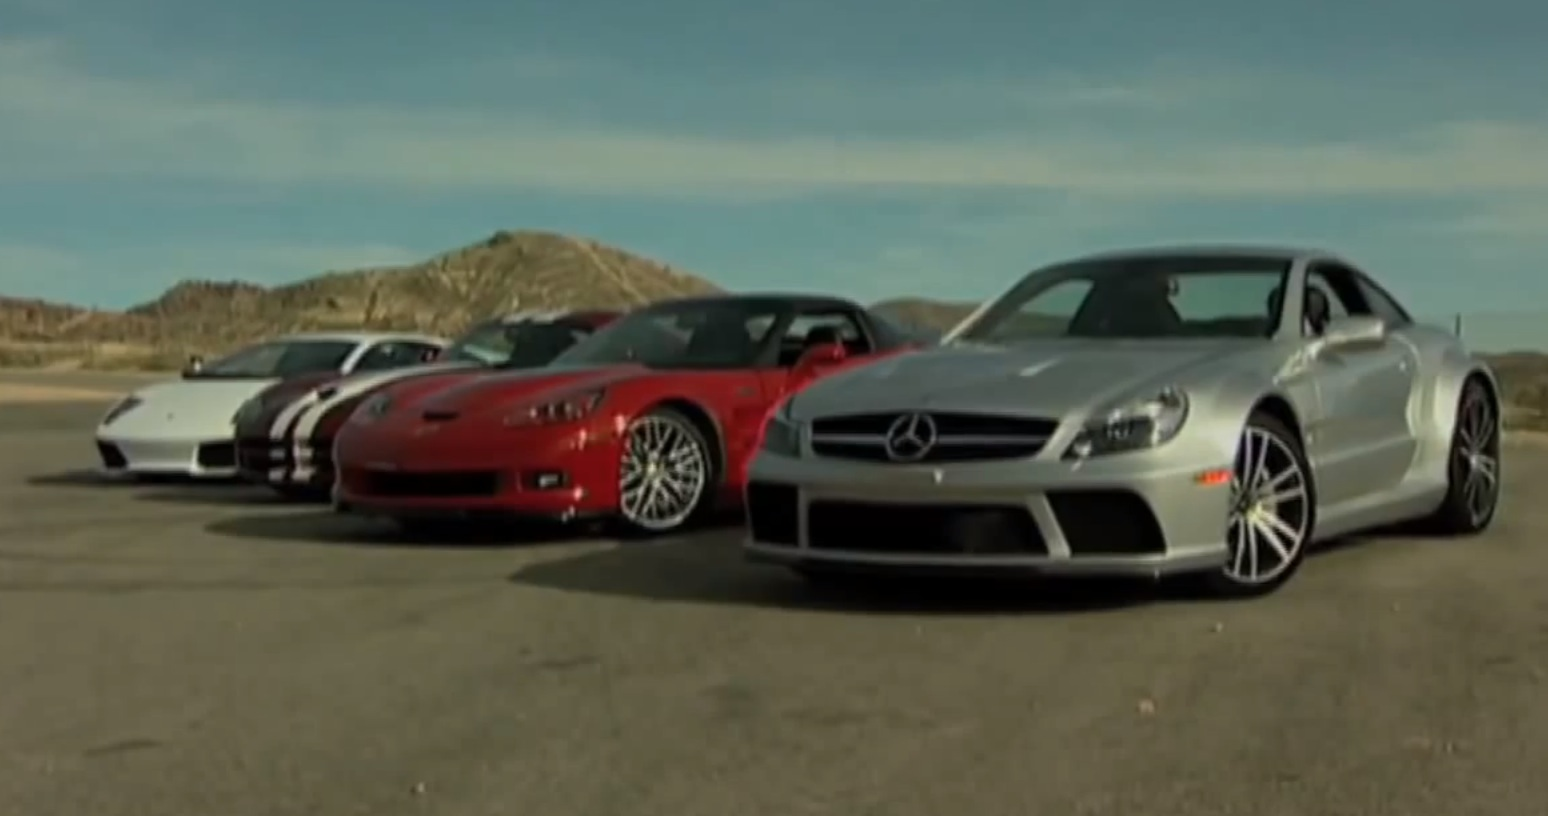 viper-vs-sl65-vs-lp640-vs-zr1